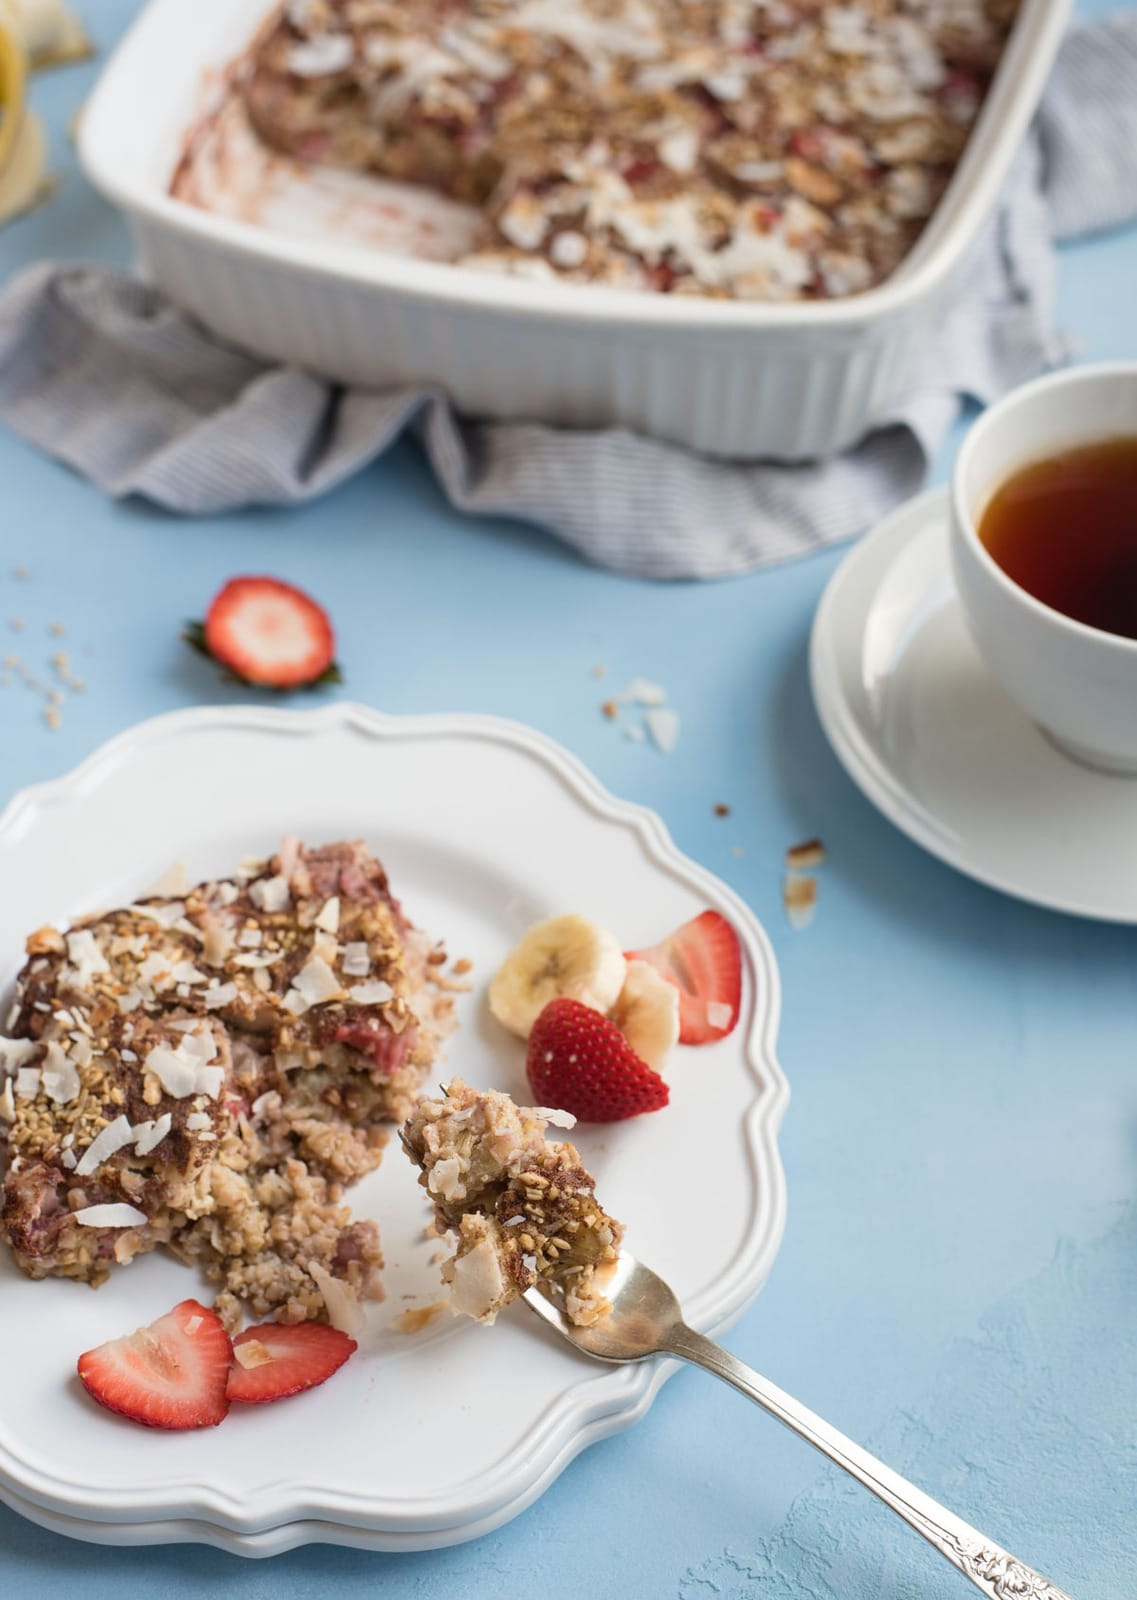 Strawberry banana steel cut oat bake breakfast plate with bite